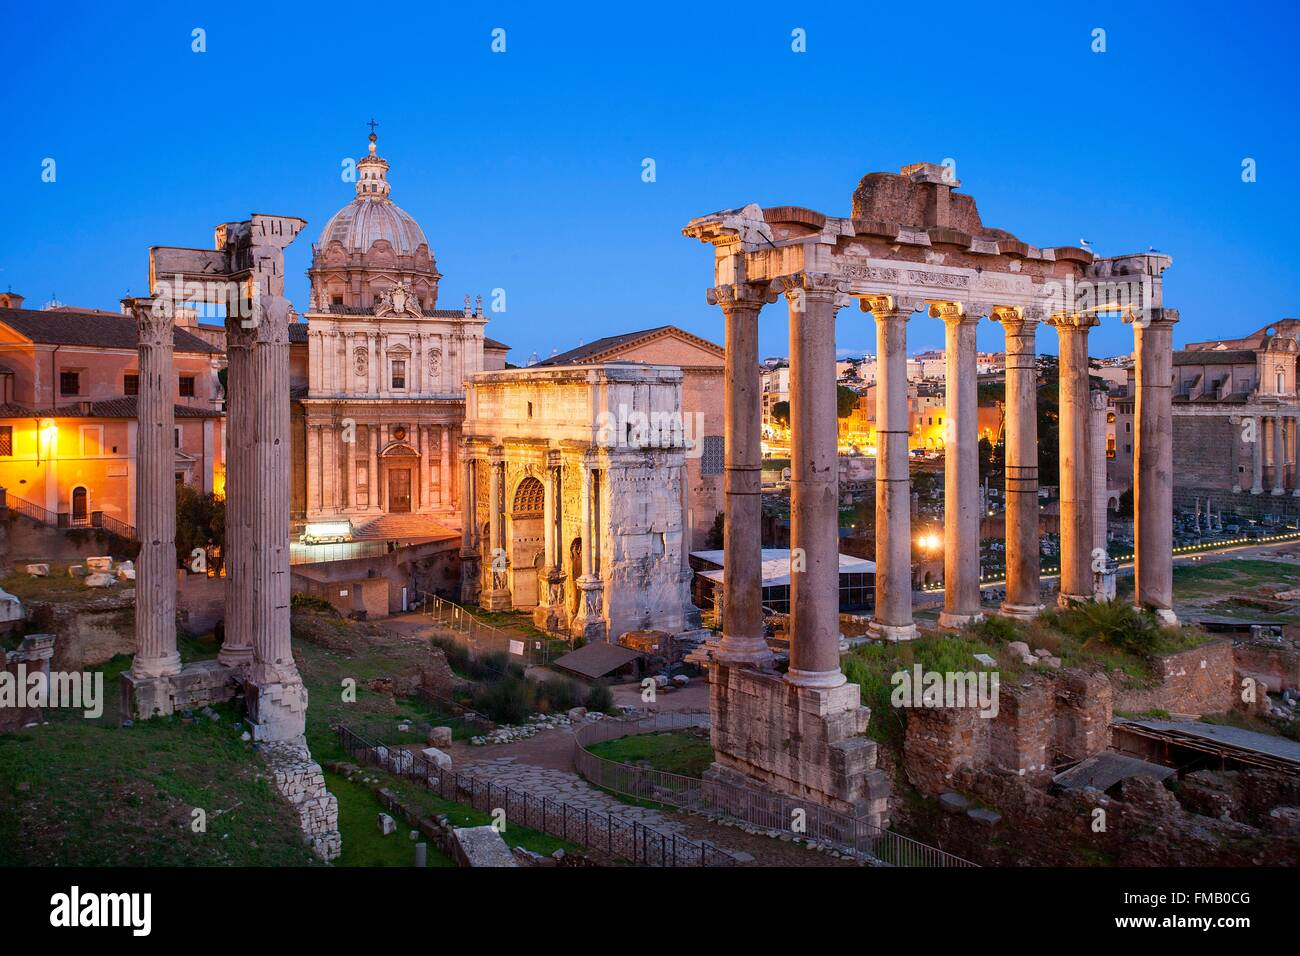 Italy, Lazio, Rome, historical center listed as World Heritage by UNESCO, the Roman Forum and the Arch of Septimius - Stock Image